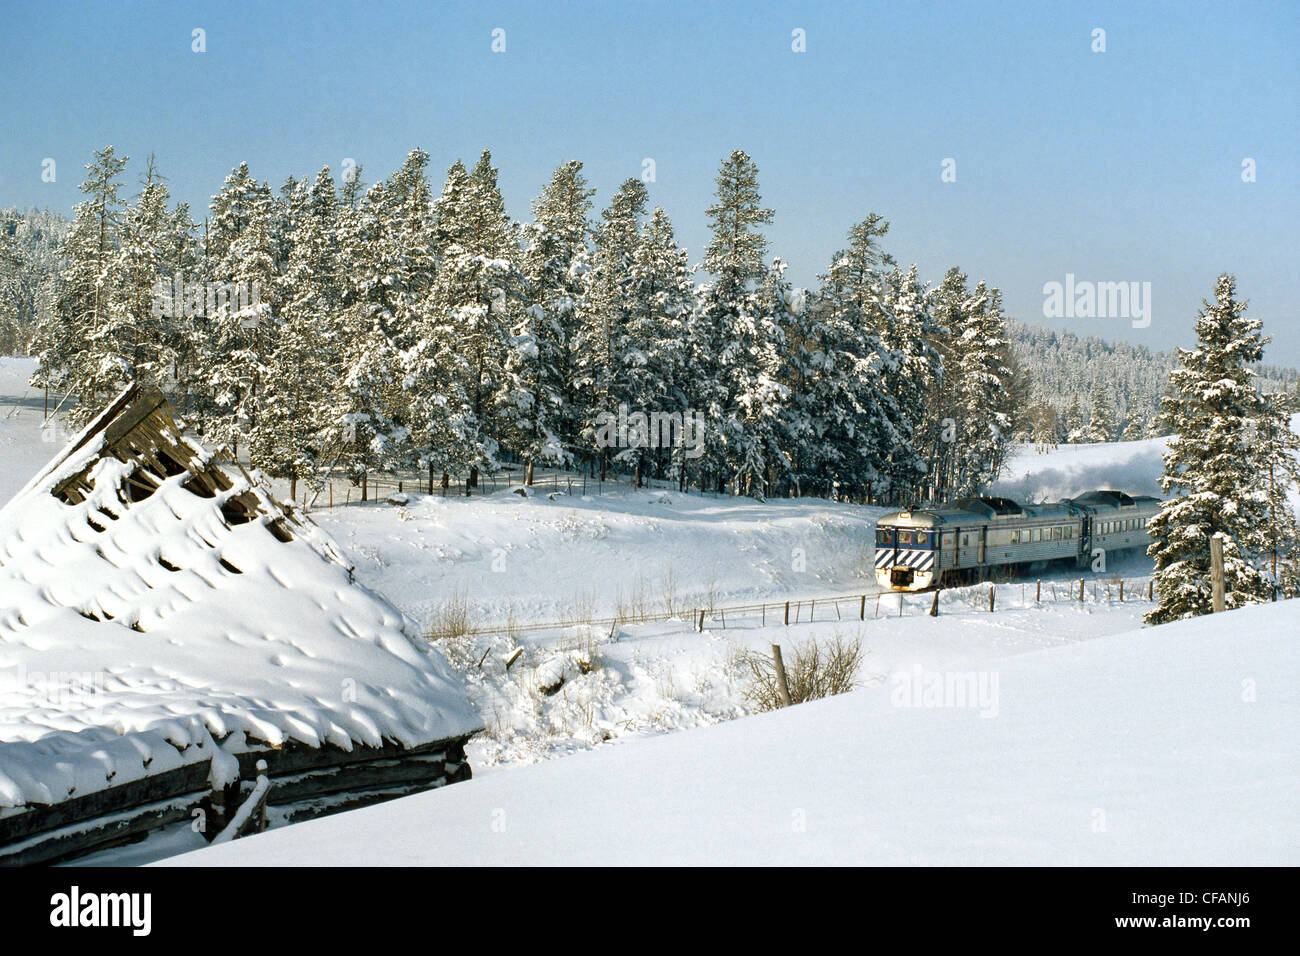 BC Rail Prospector passenger train travelling through the Cariboo region of British Columbia, Canada - Stock Image